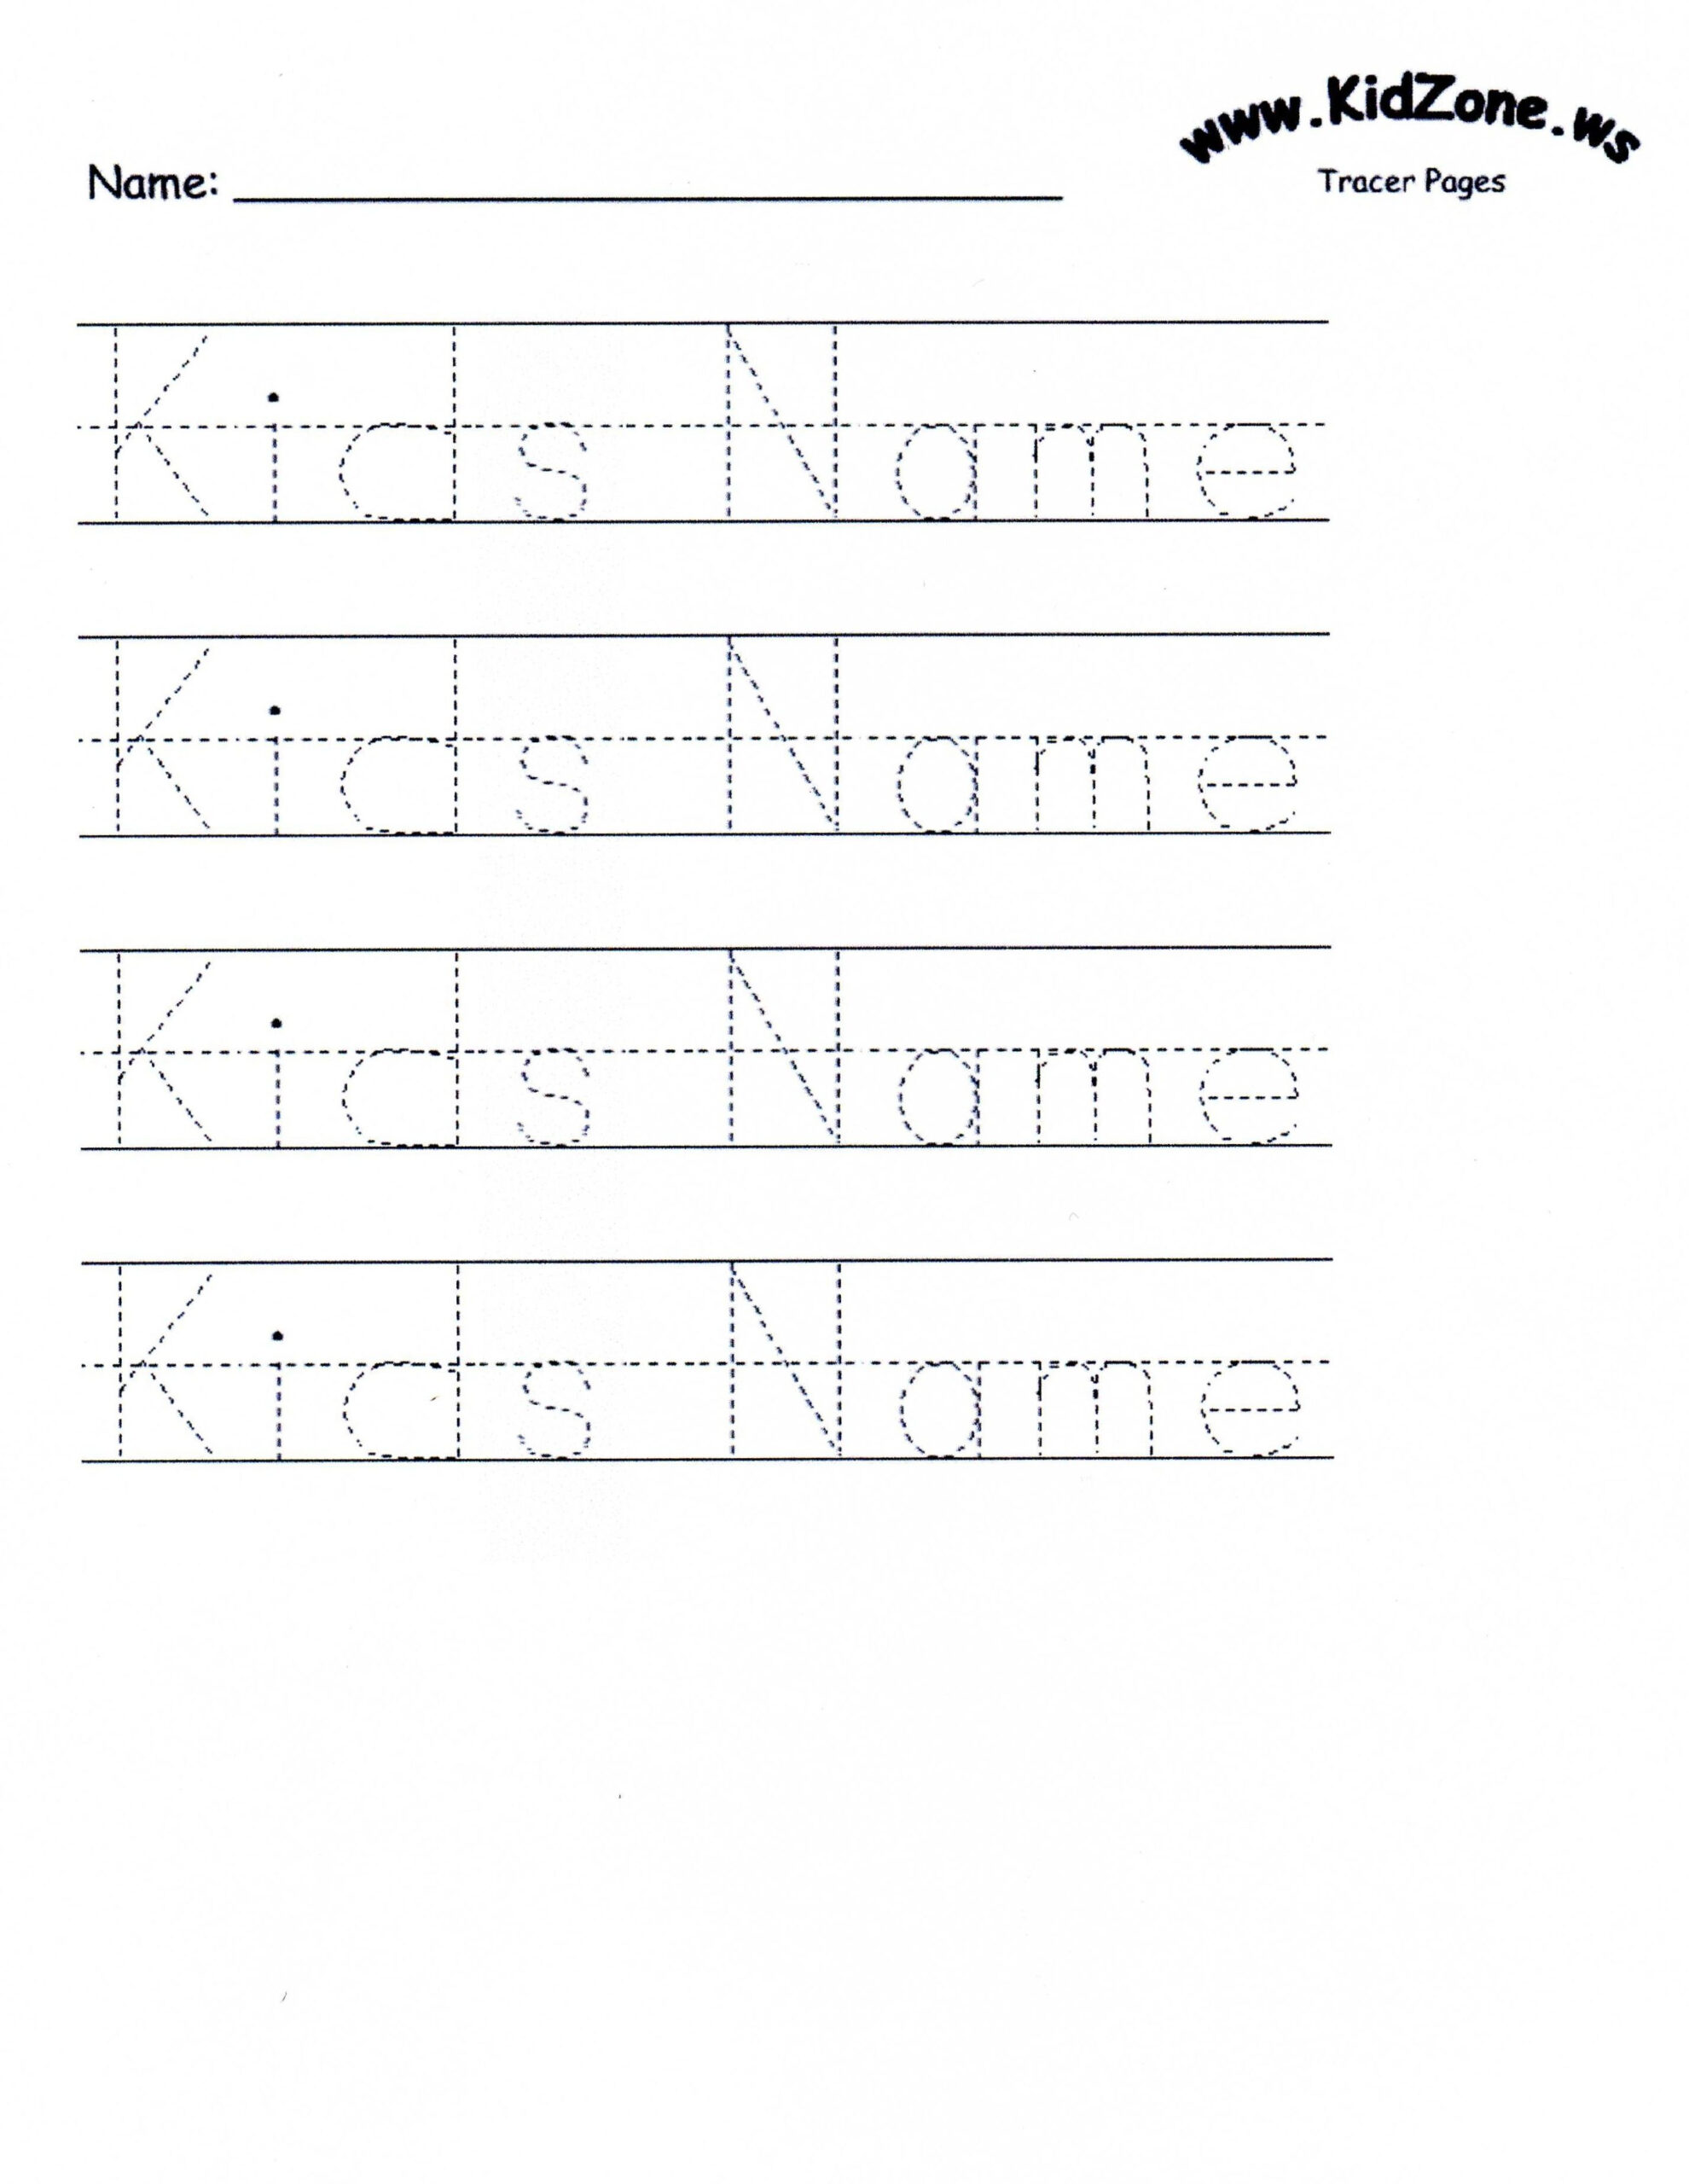 Customizable Printable Letter Pages | Name Tracing regarding Name Tracing Practice Editable